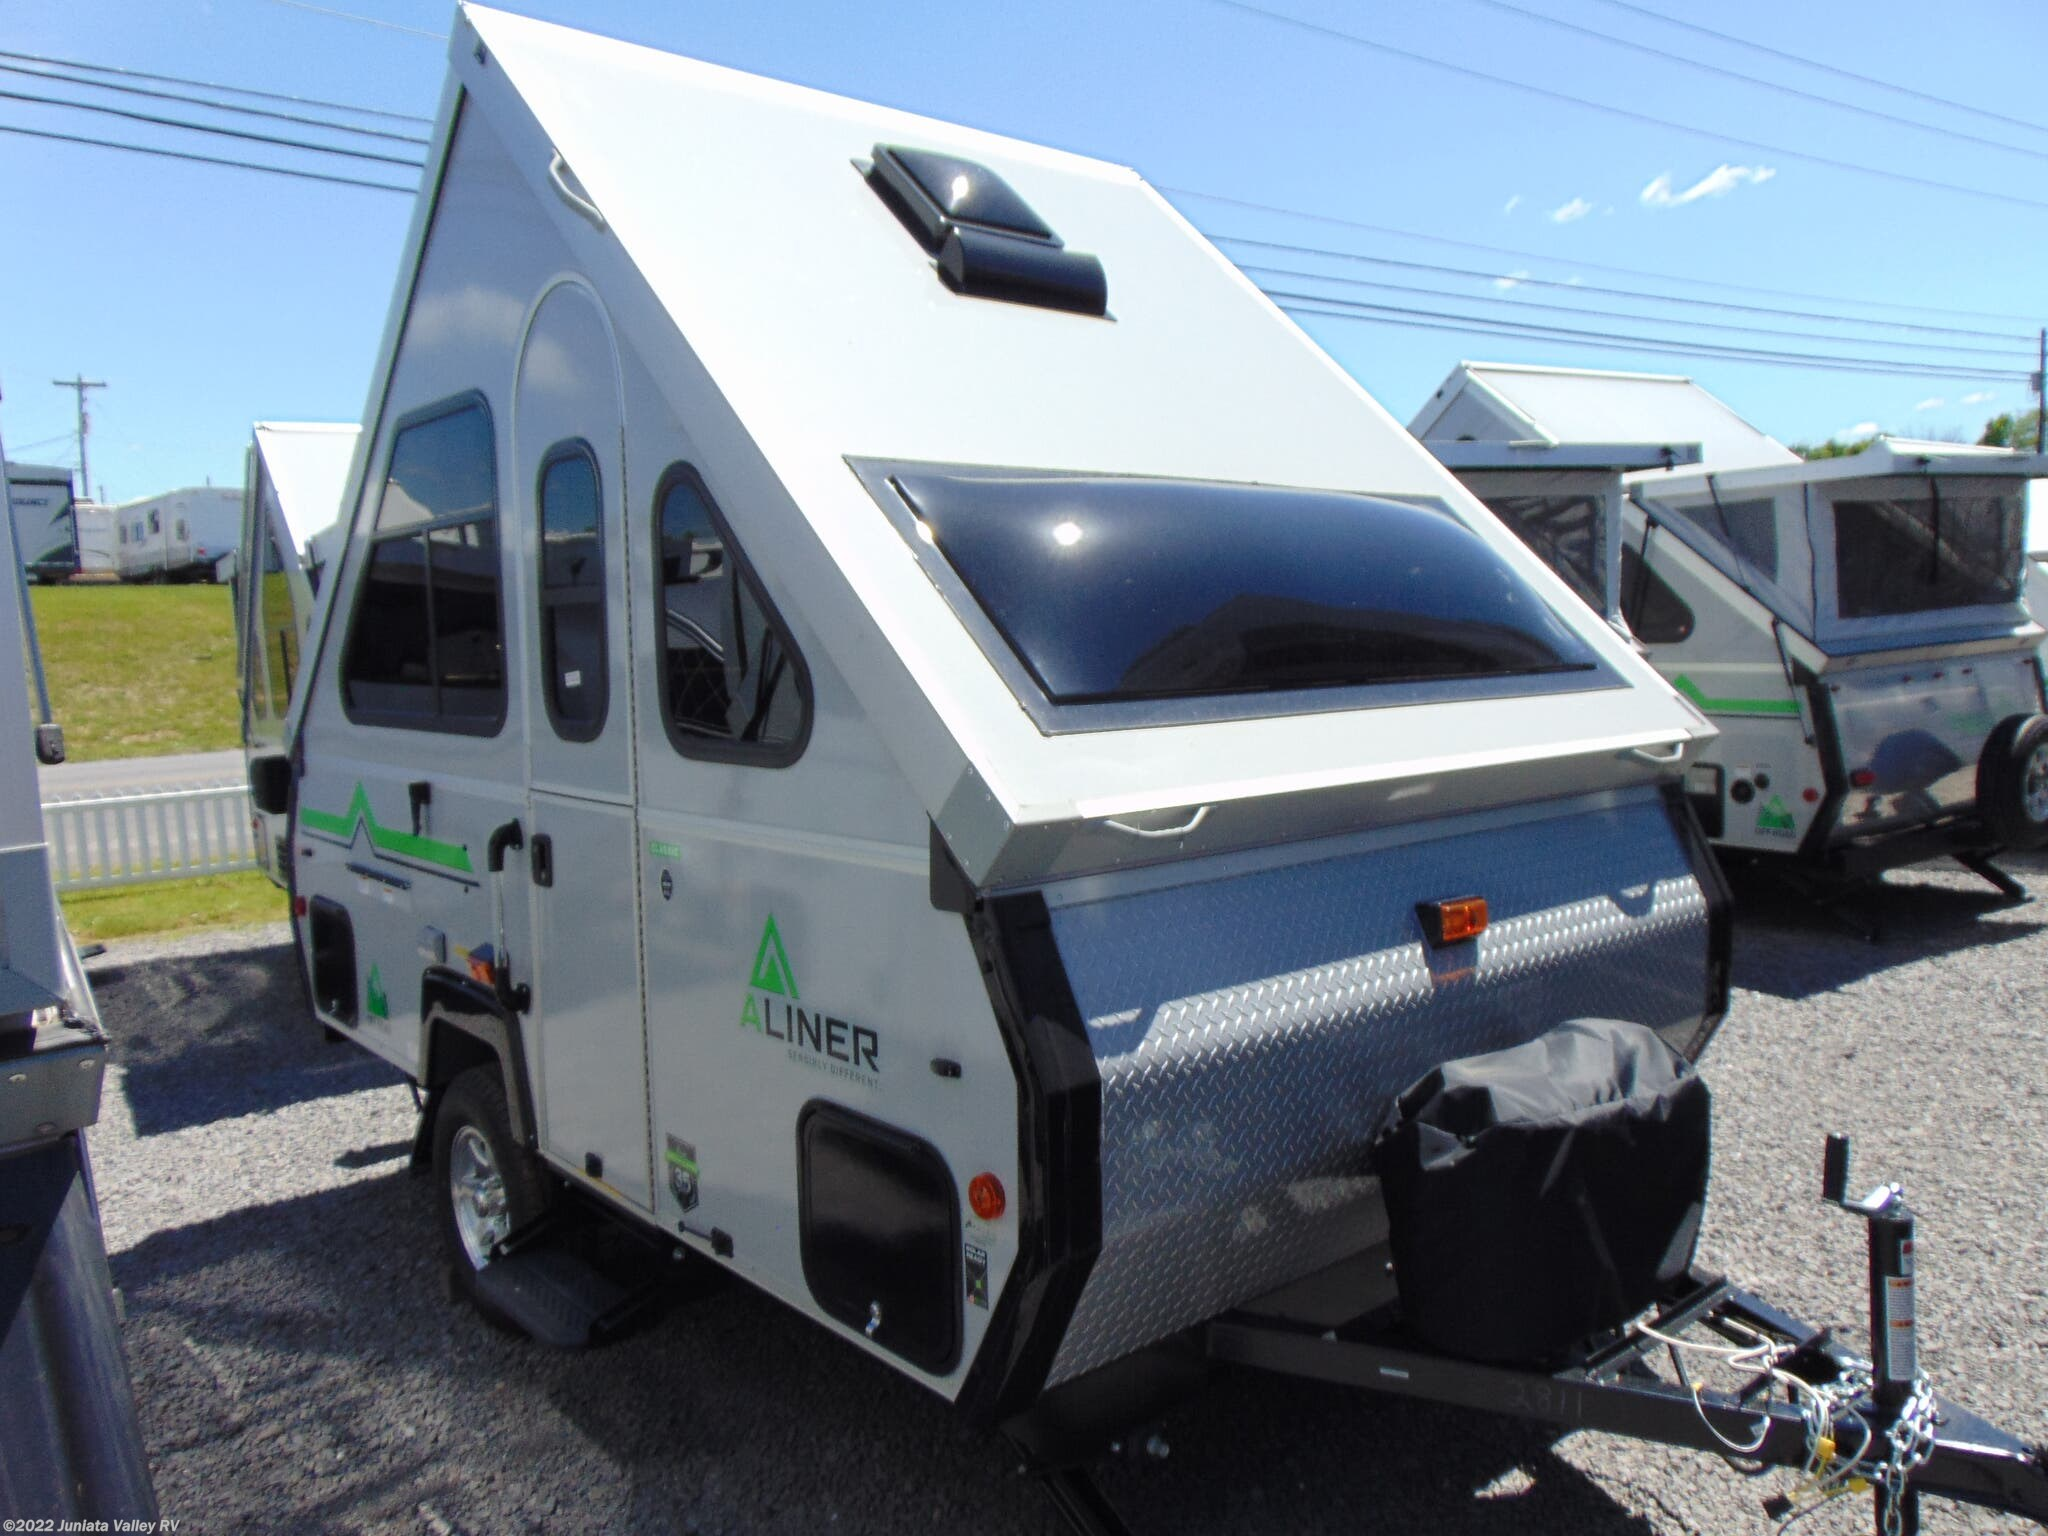 5952 - 2019 Travel Lite Truck Campers 800X for sale in Mifflintown PA